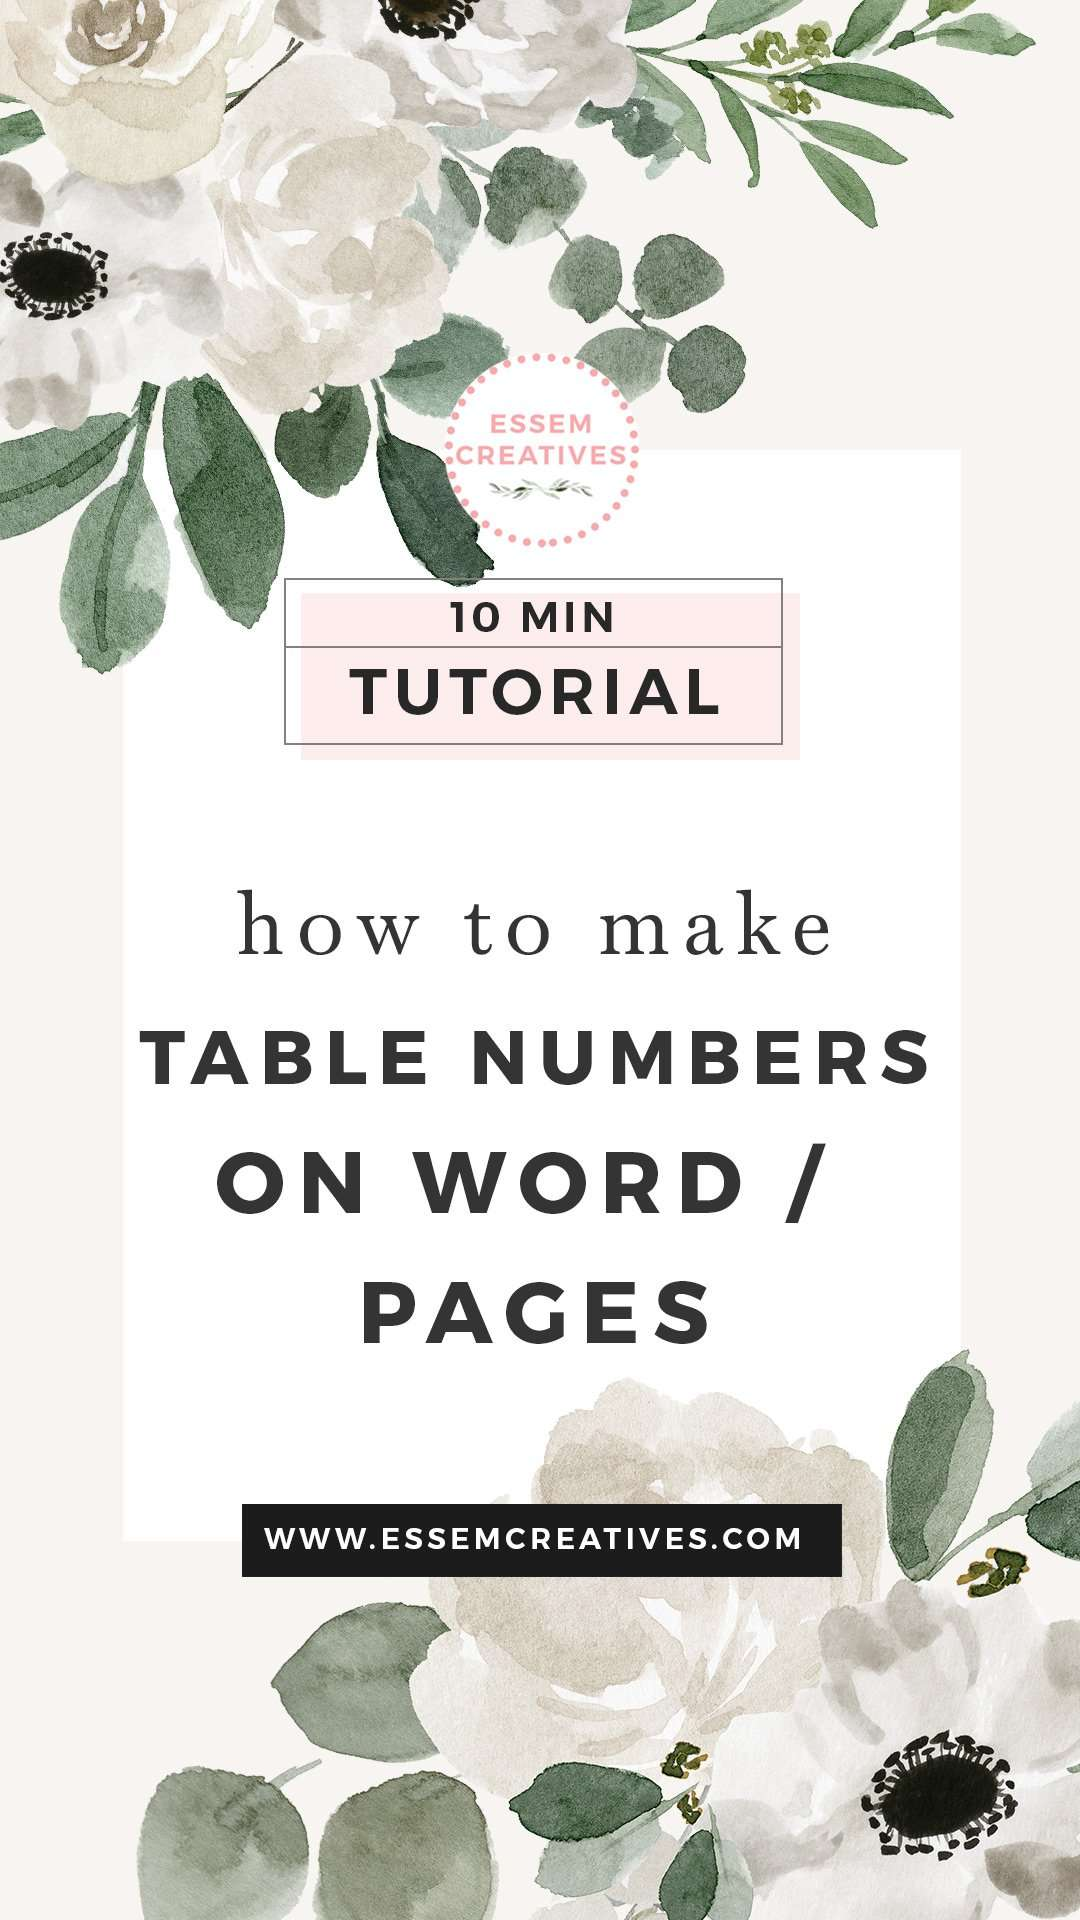 How to Make Table Numbers In Word/Pages with Watercolor Florals for Weddings | Click here to make professional looking table numbers that leave your guests in awe of your creative skills - all in under 10 mins! #tablenumbers #weddingdecorations #weddings #weddingdetails #diycrafts